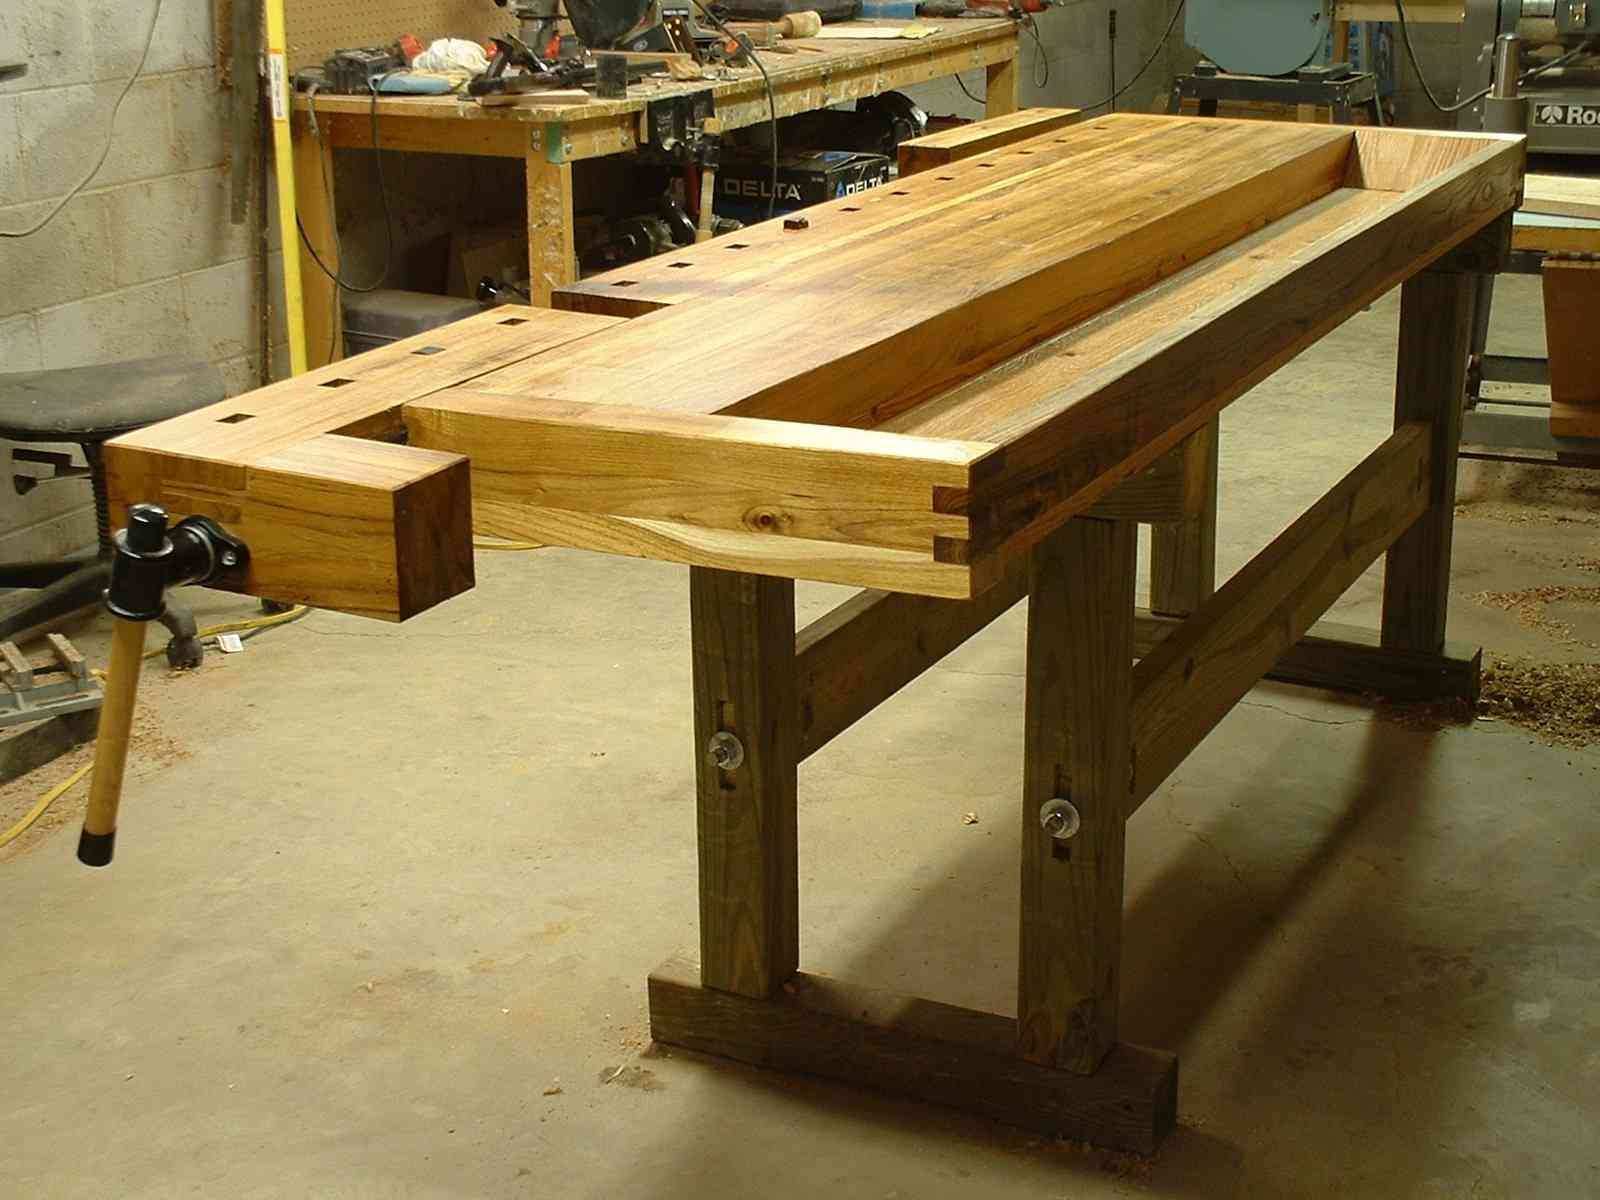 European Cabinet Makers Workbench Woodworking Bench Plans Woodworking Furniture Plans Woodworking Bench